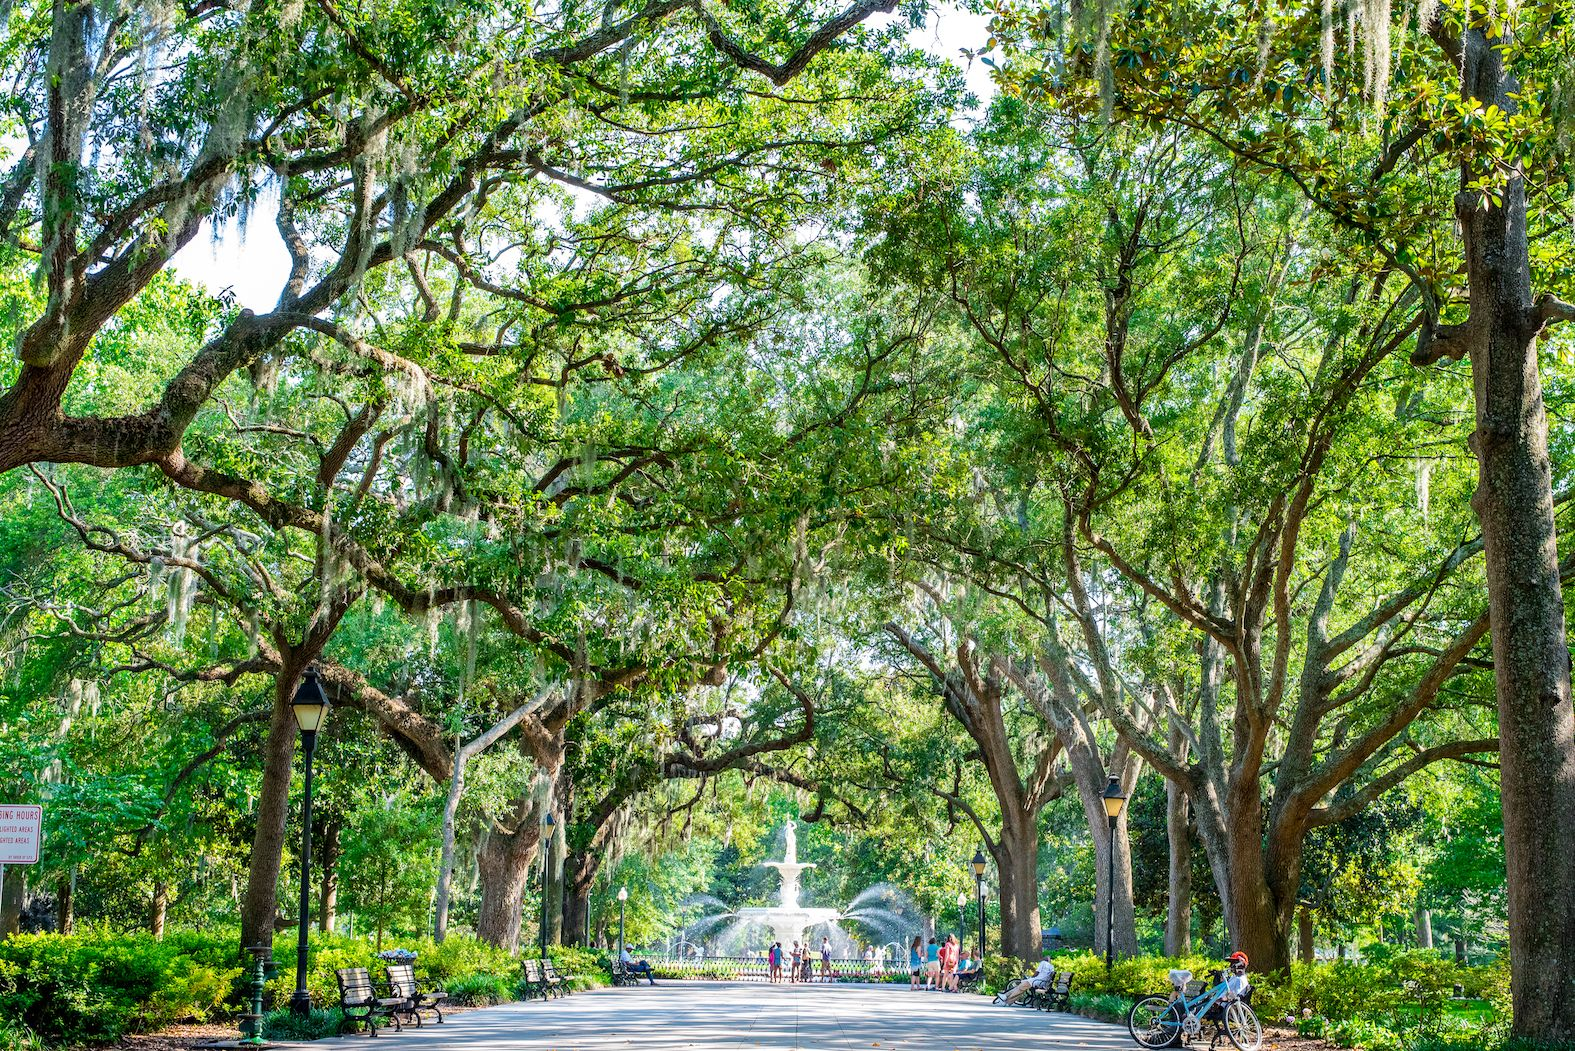 A Travel Guide To Savannah, Georgia